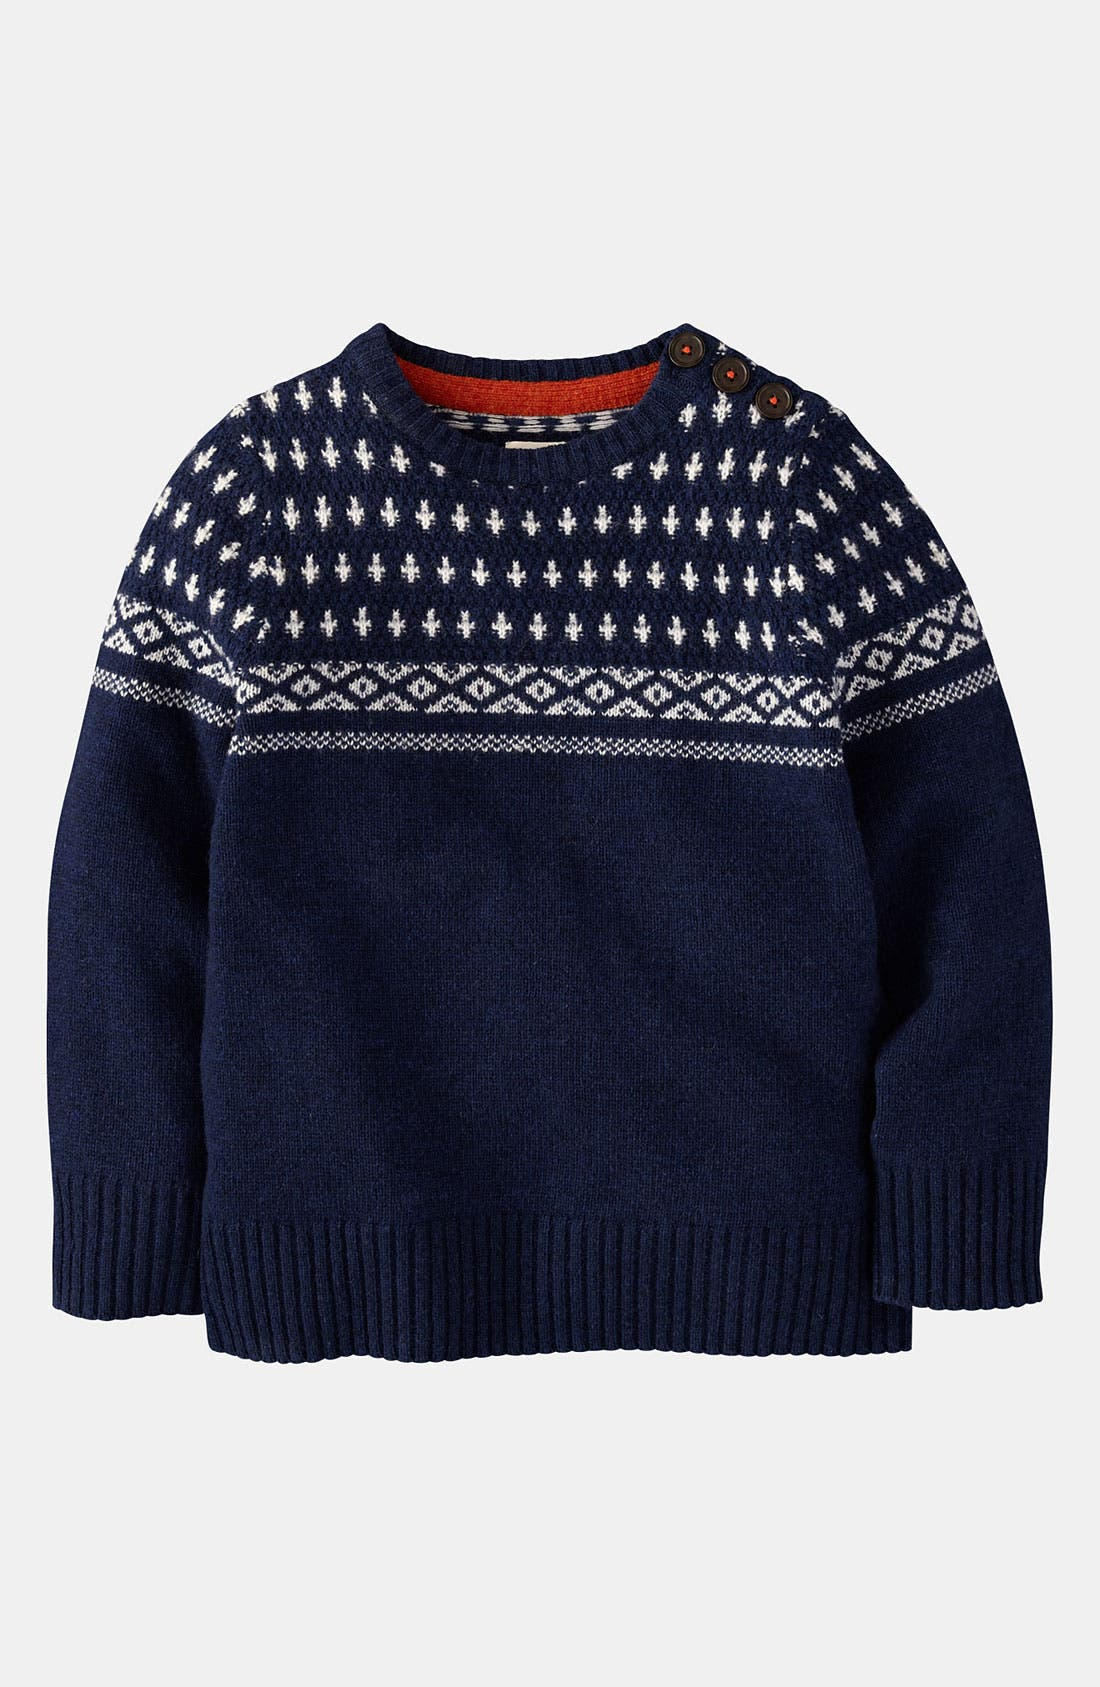 Main Image - Mini Boden 'Chunky' Sweater (Toddler)